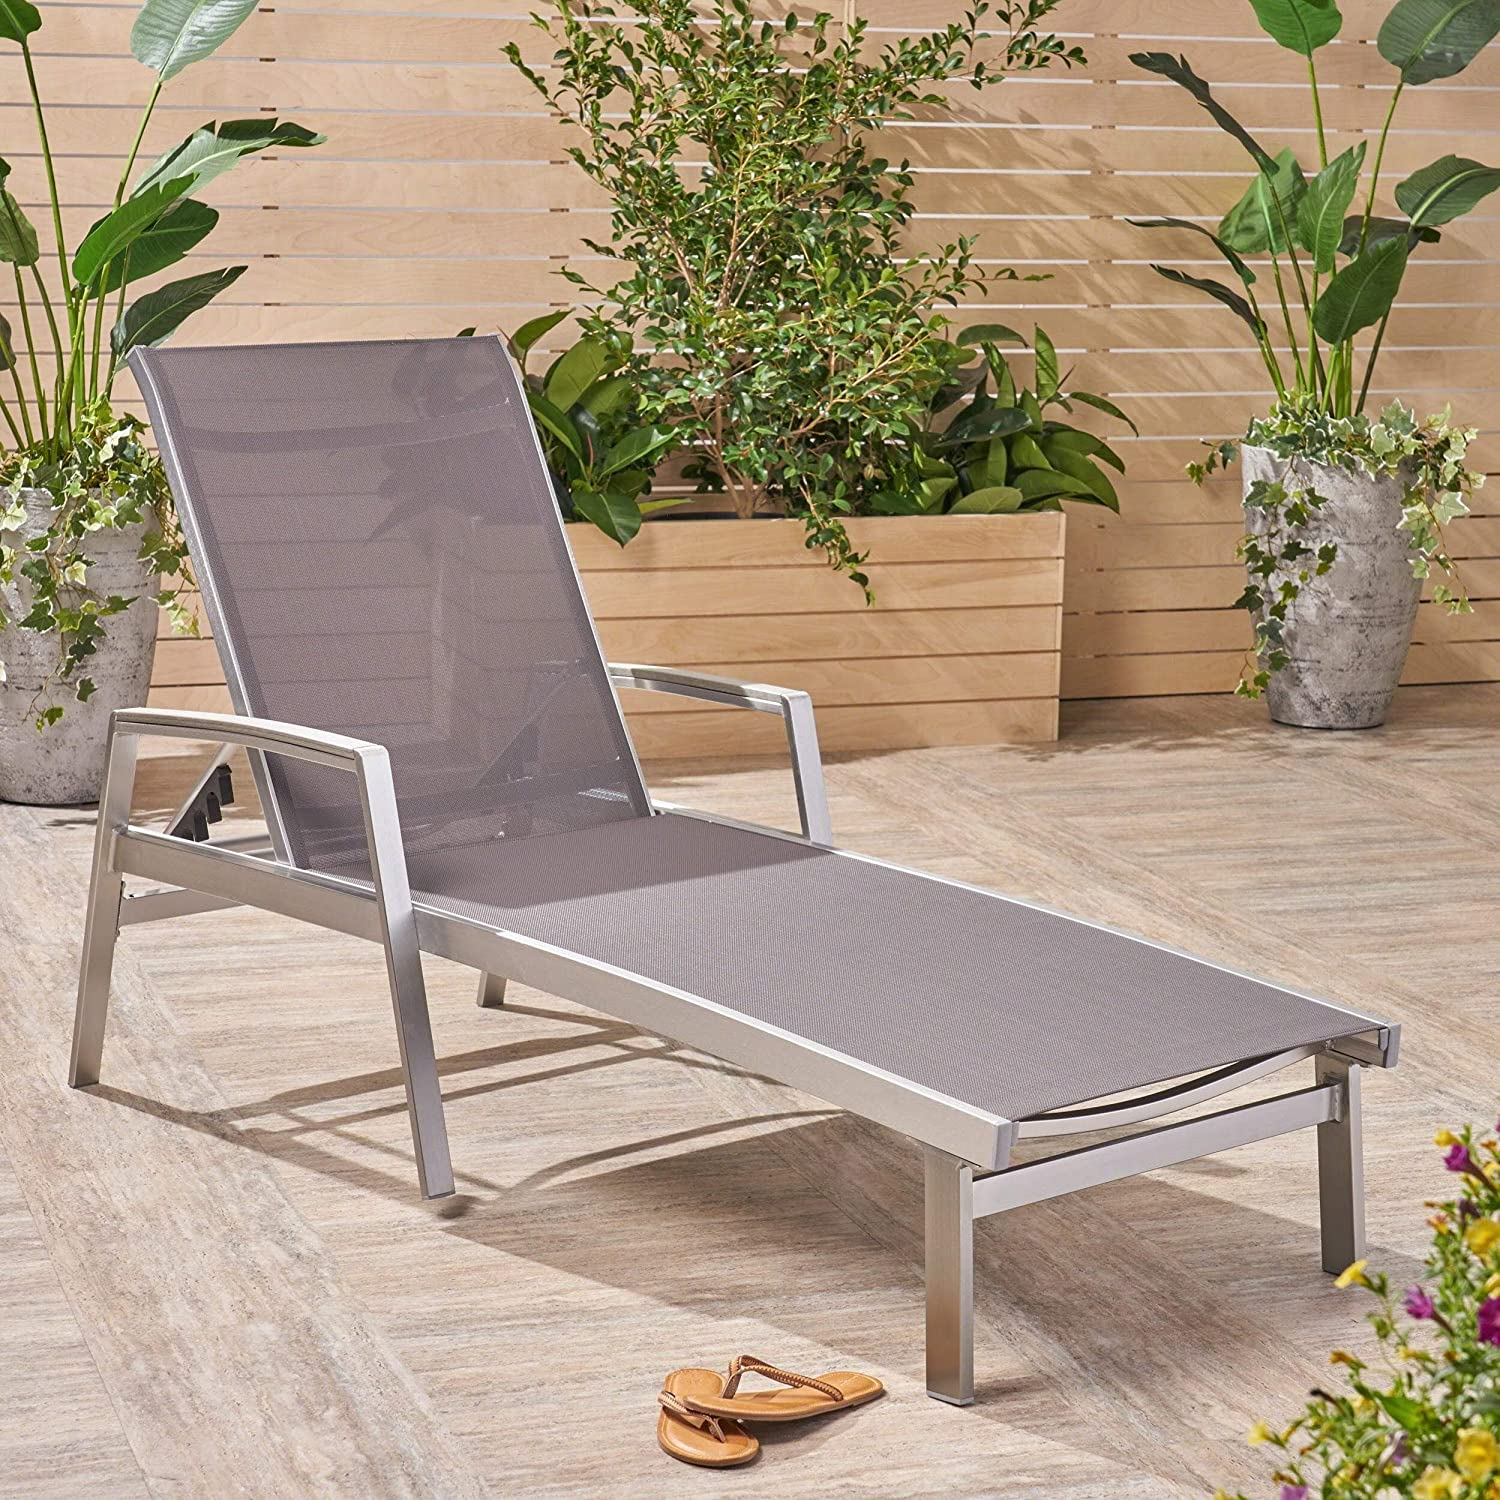 Outdoor Chaise Lounge in Gray Noble House 20.86 in